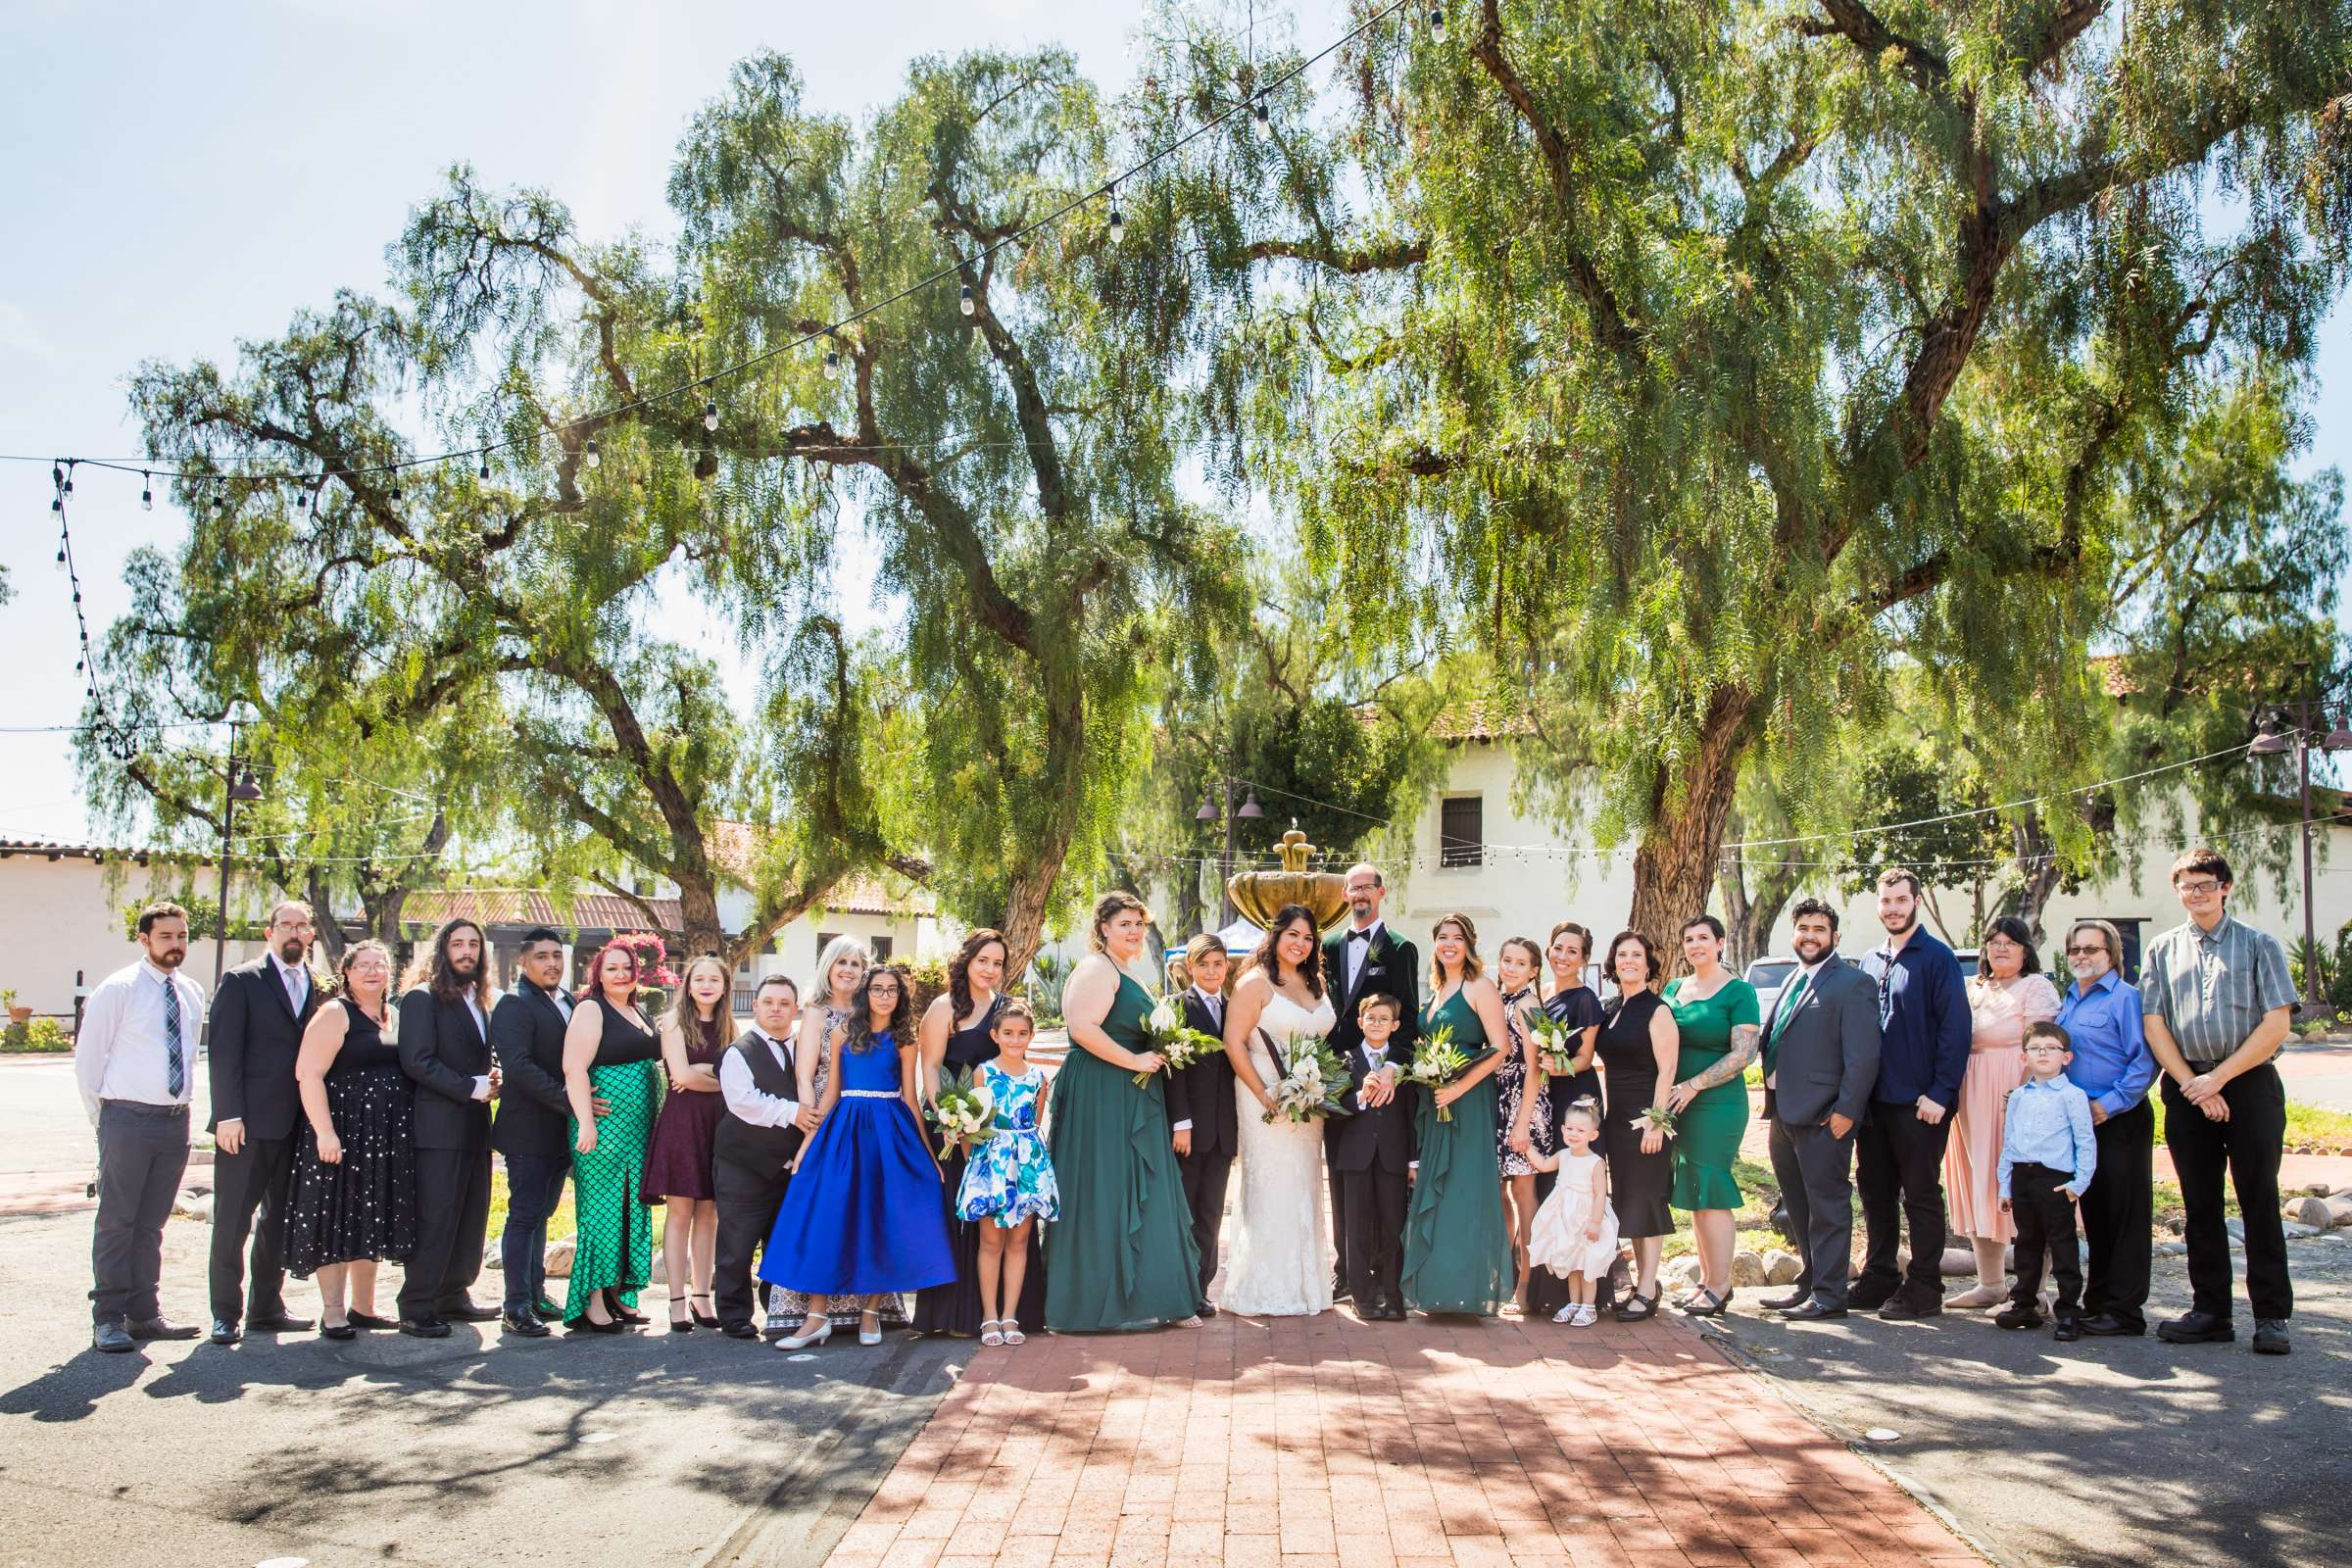 Ultimate Skybox Wedding, Michele and Charles Wedding Photo #562867 by True Photography